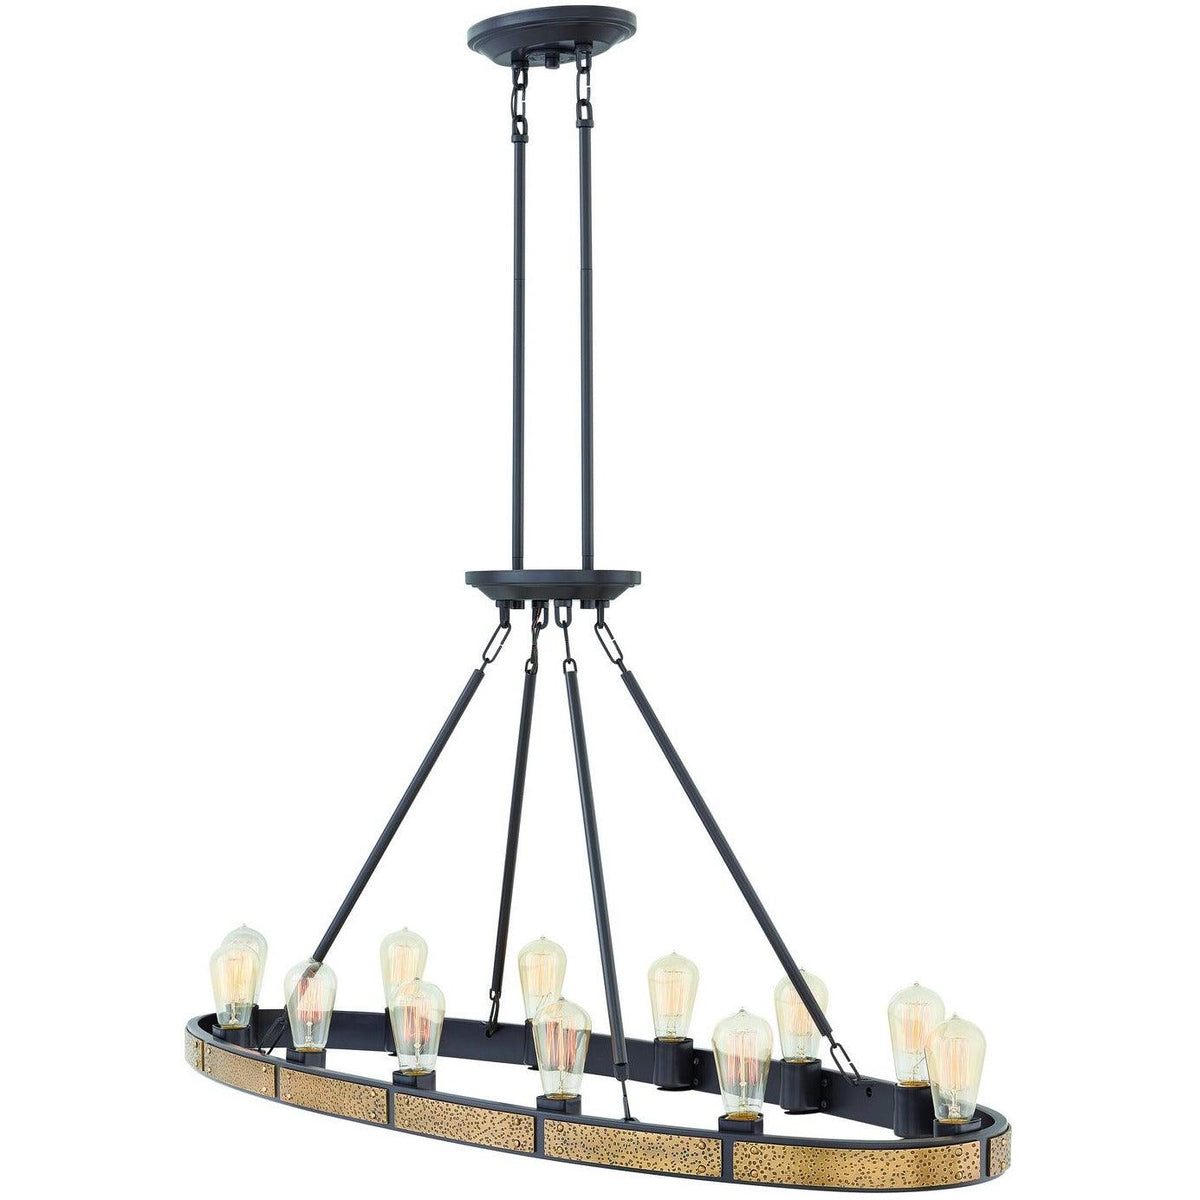 Hinkley Canada - 4396BZ - 12 Light Linear Chandelier - Everett - Bronze